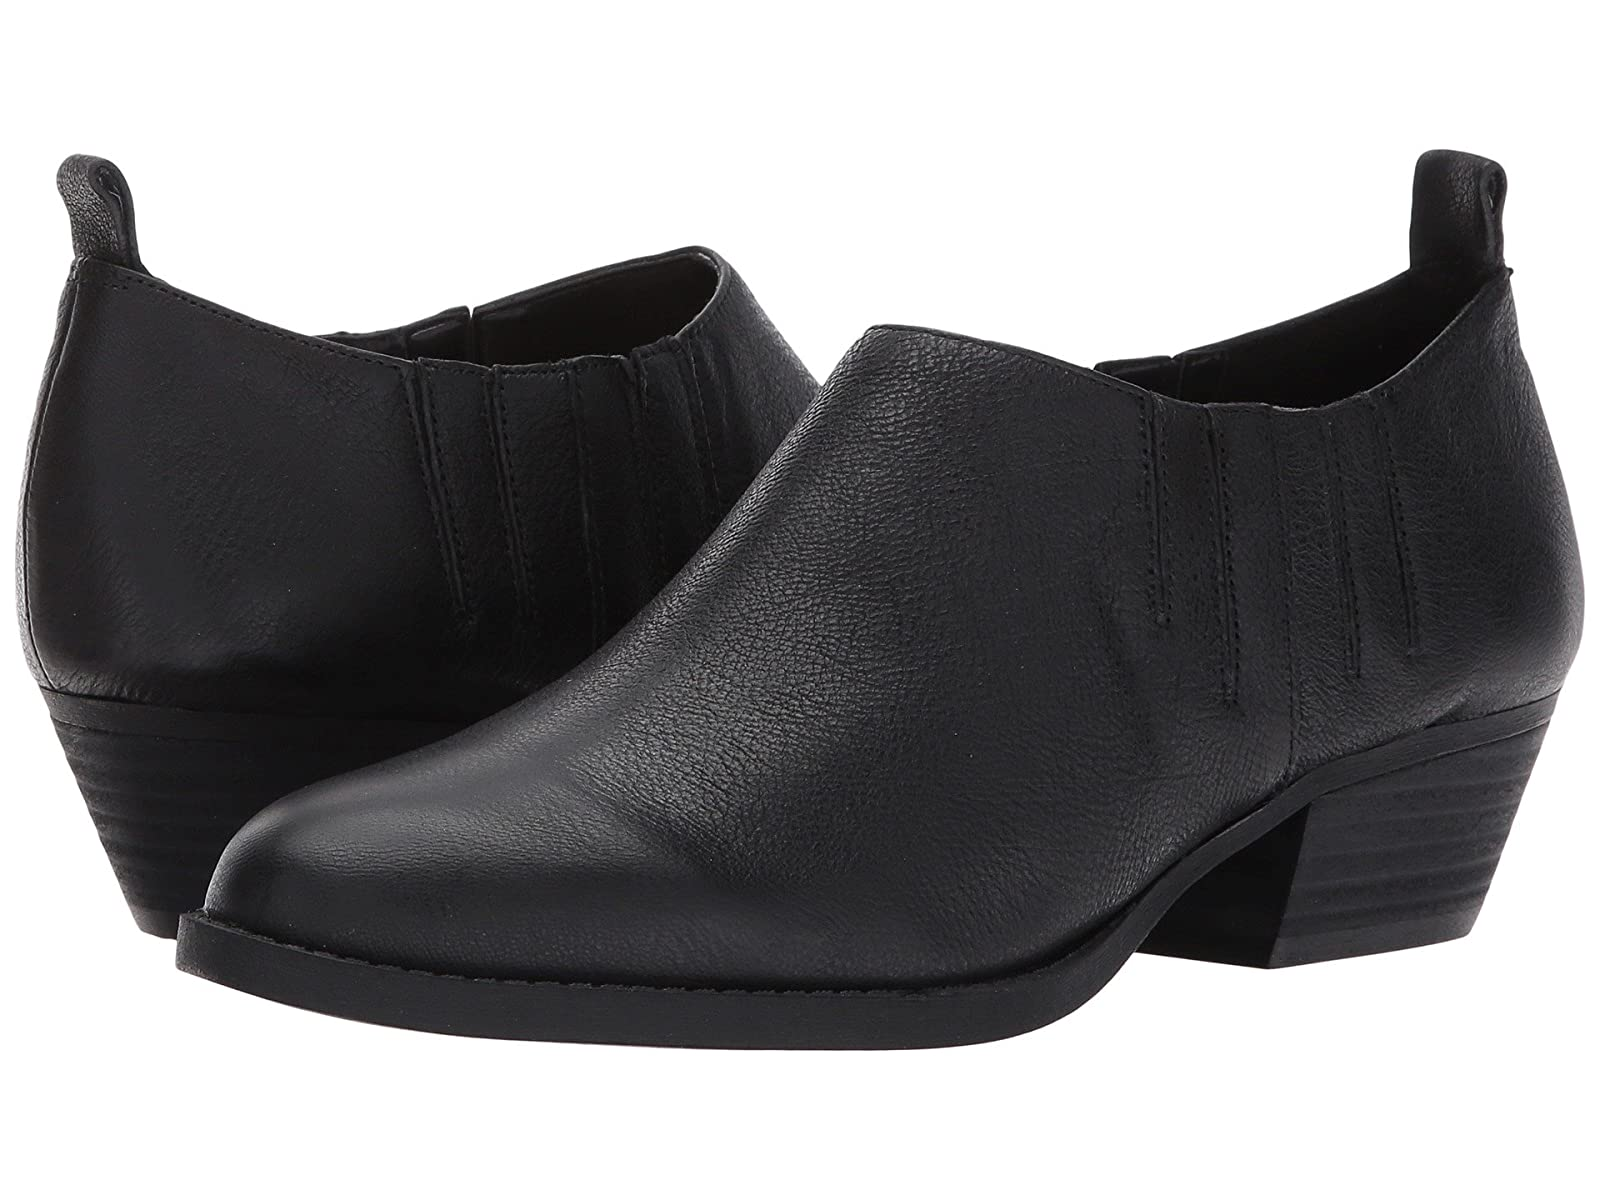 Nine West KaitlynCheap and distinctive eye-catching shoes